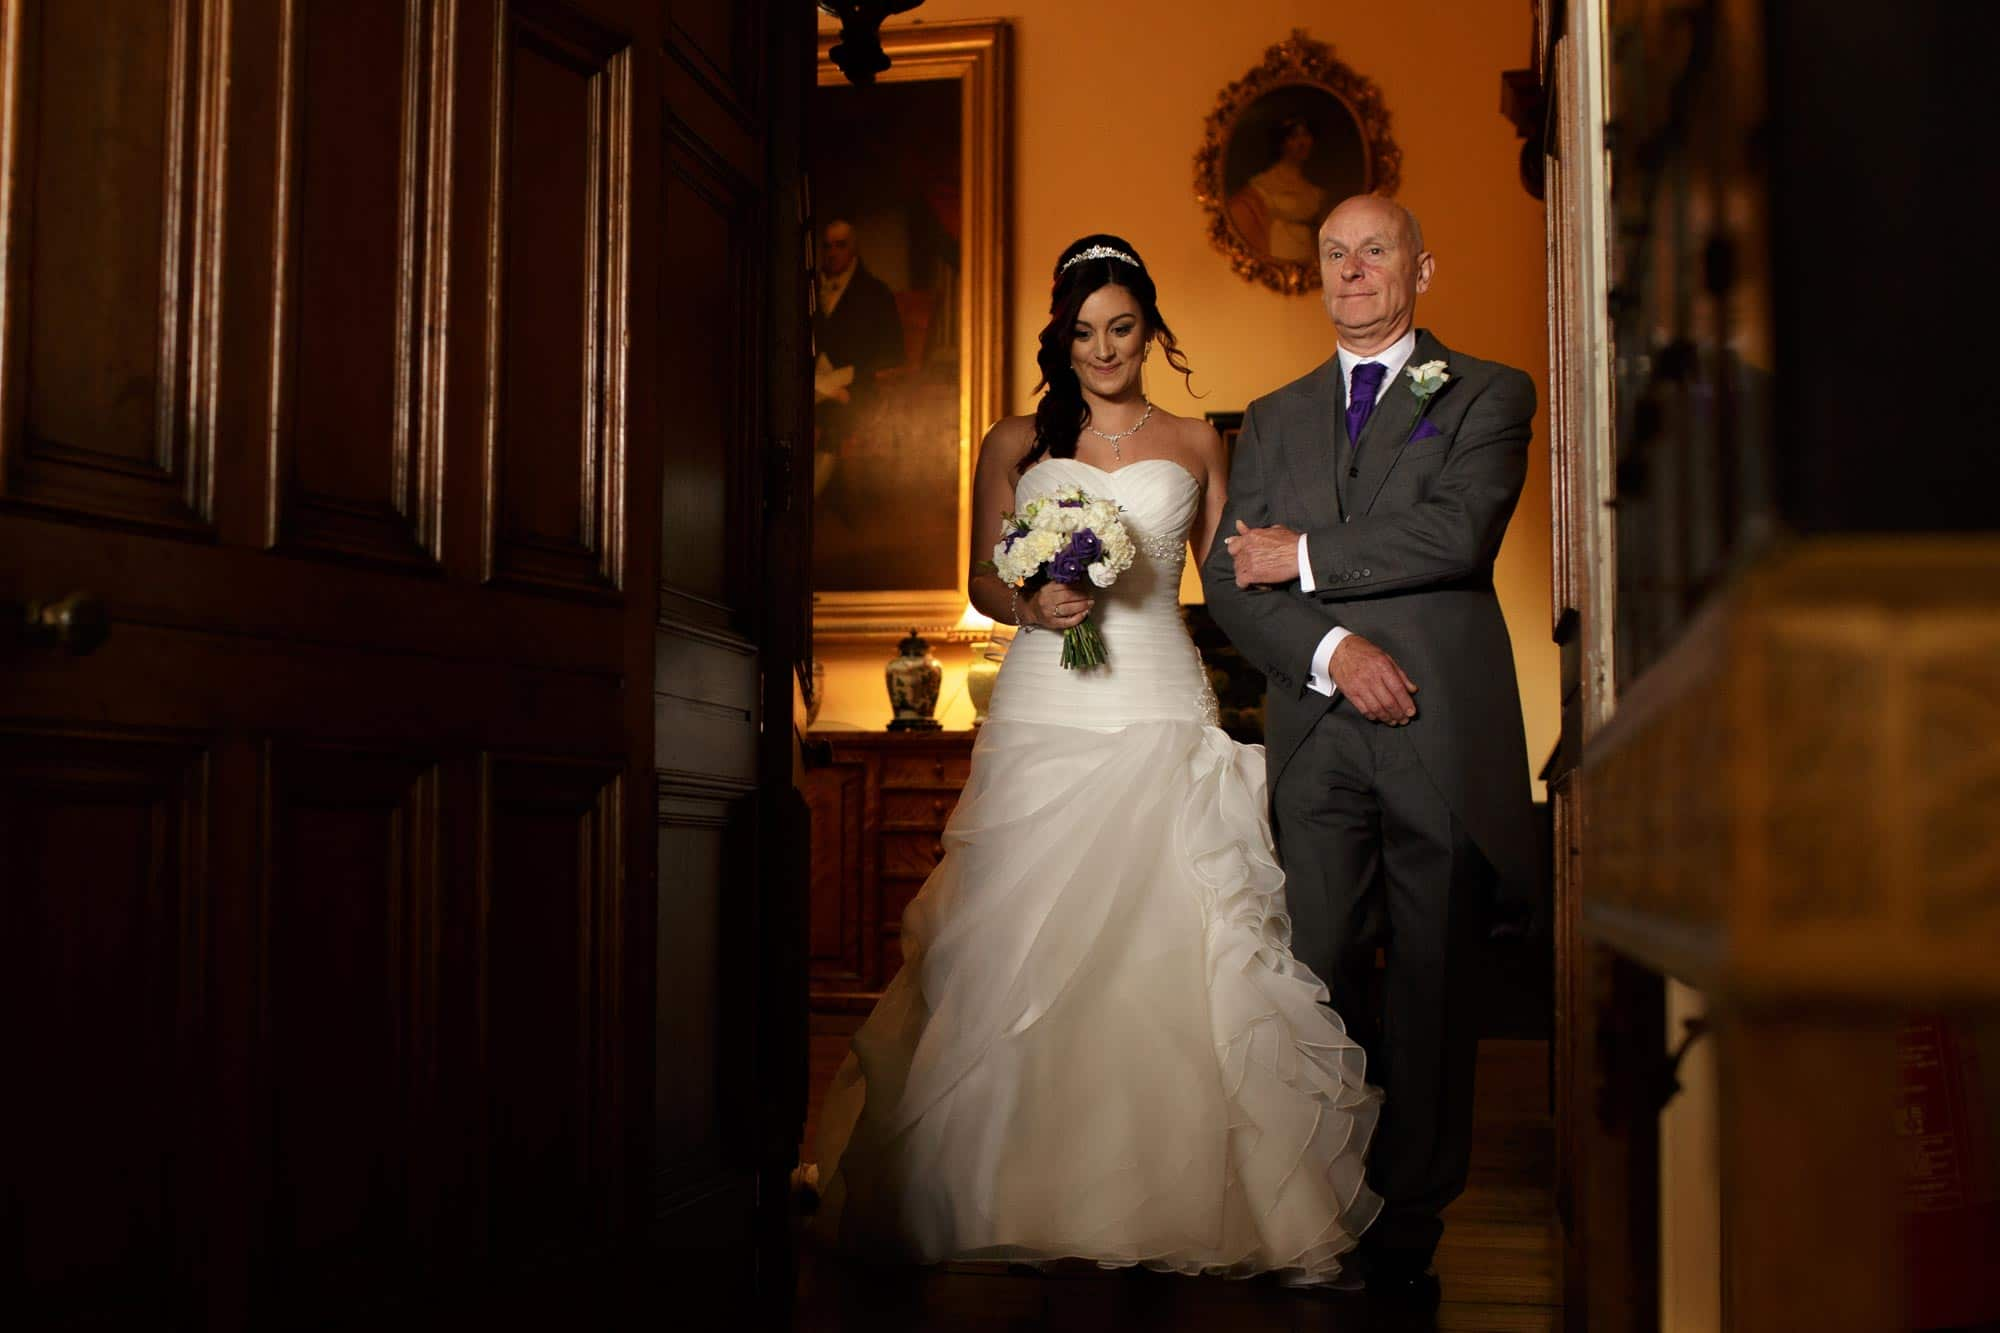 Father walking a bride down the aisle at Arley Hall wedding